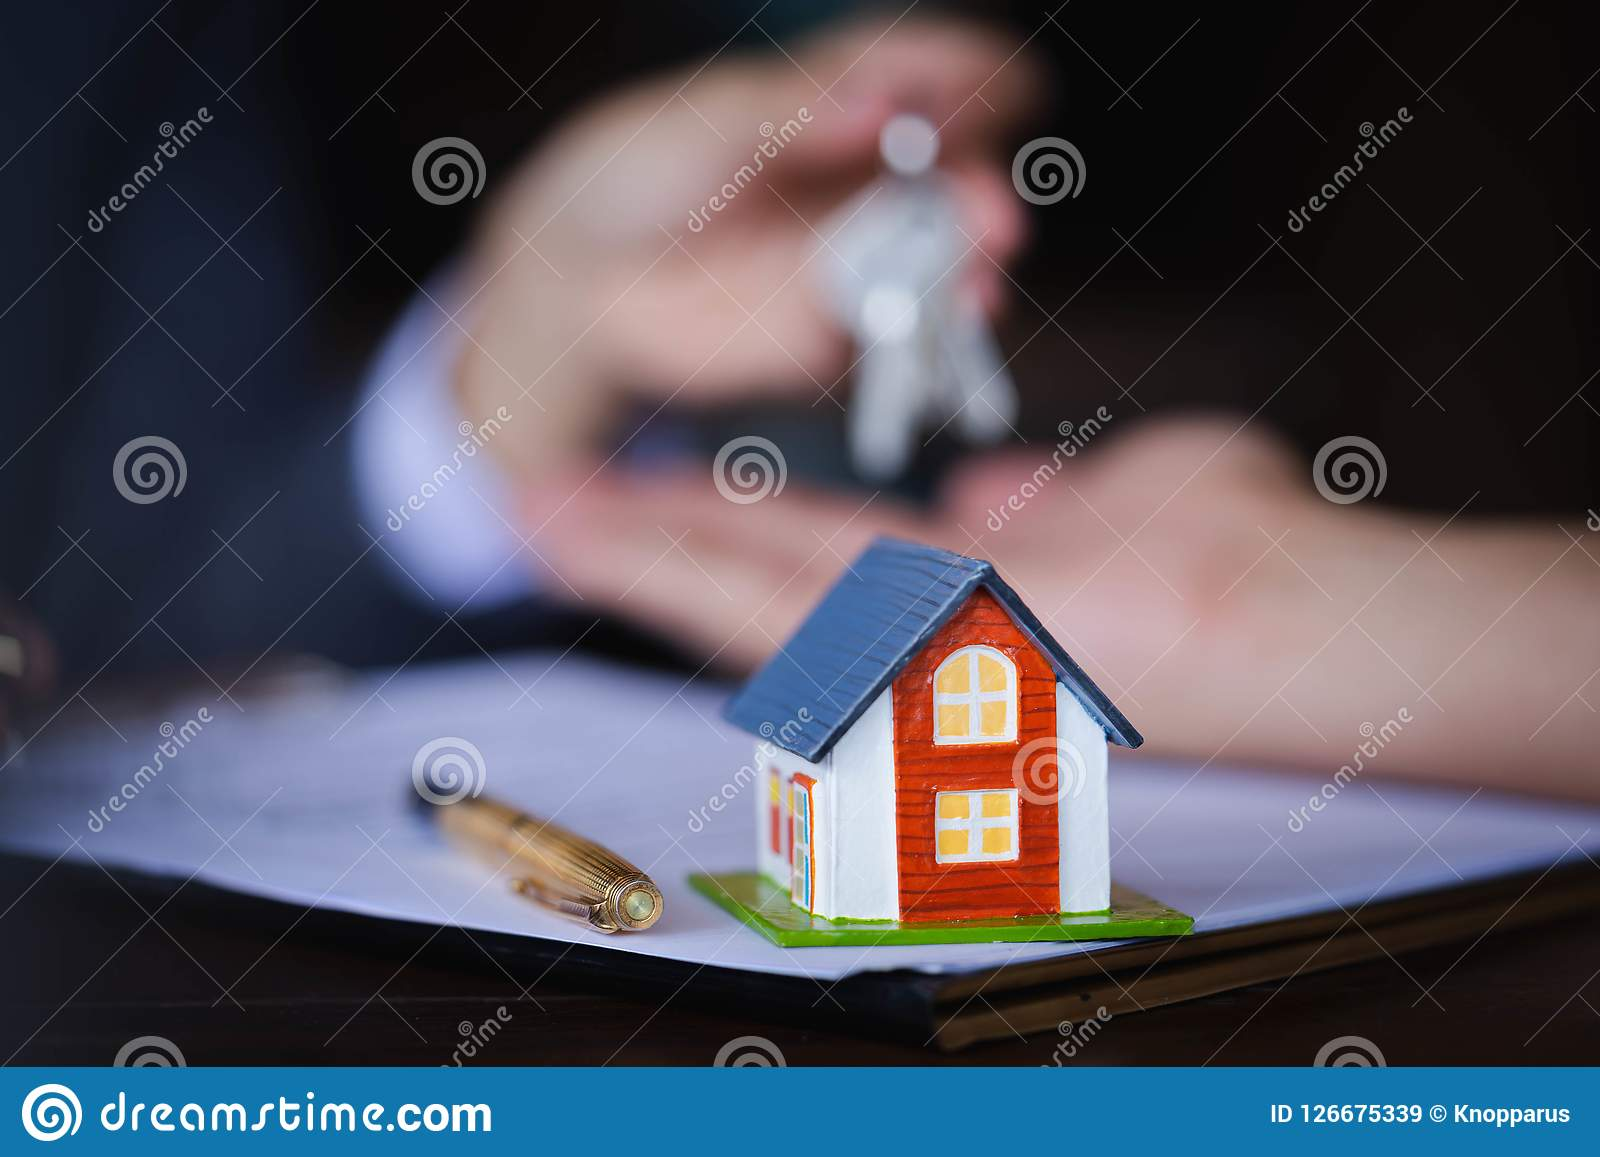 Wooden house on the table background with Real-estate agent giving keys to new property owners after signing contract for realty